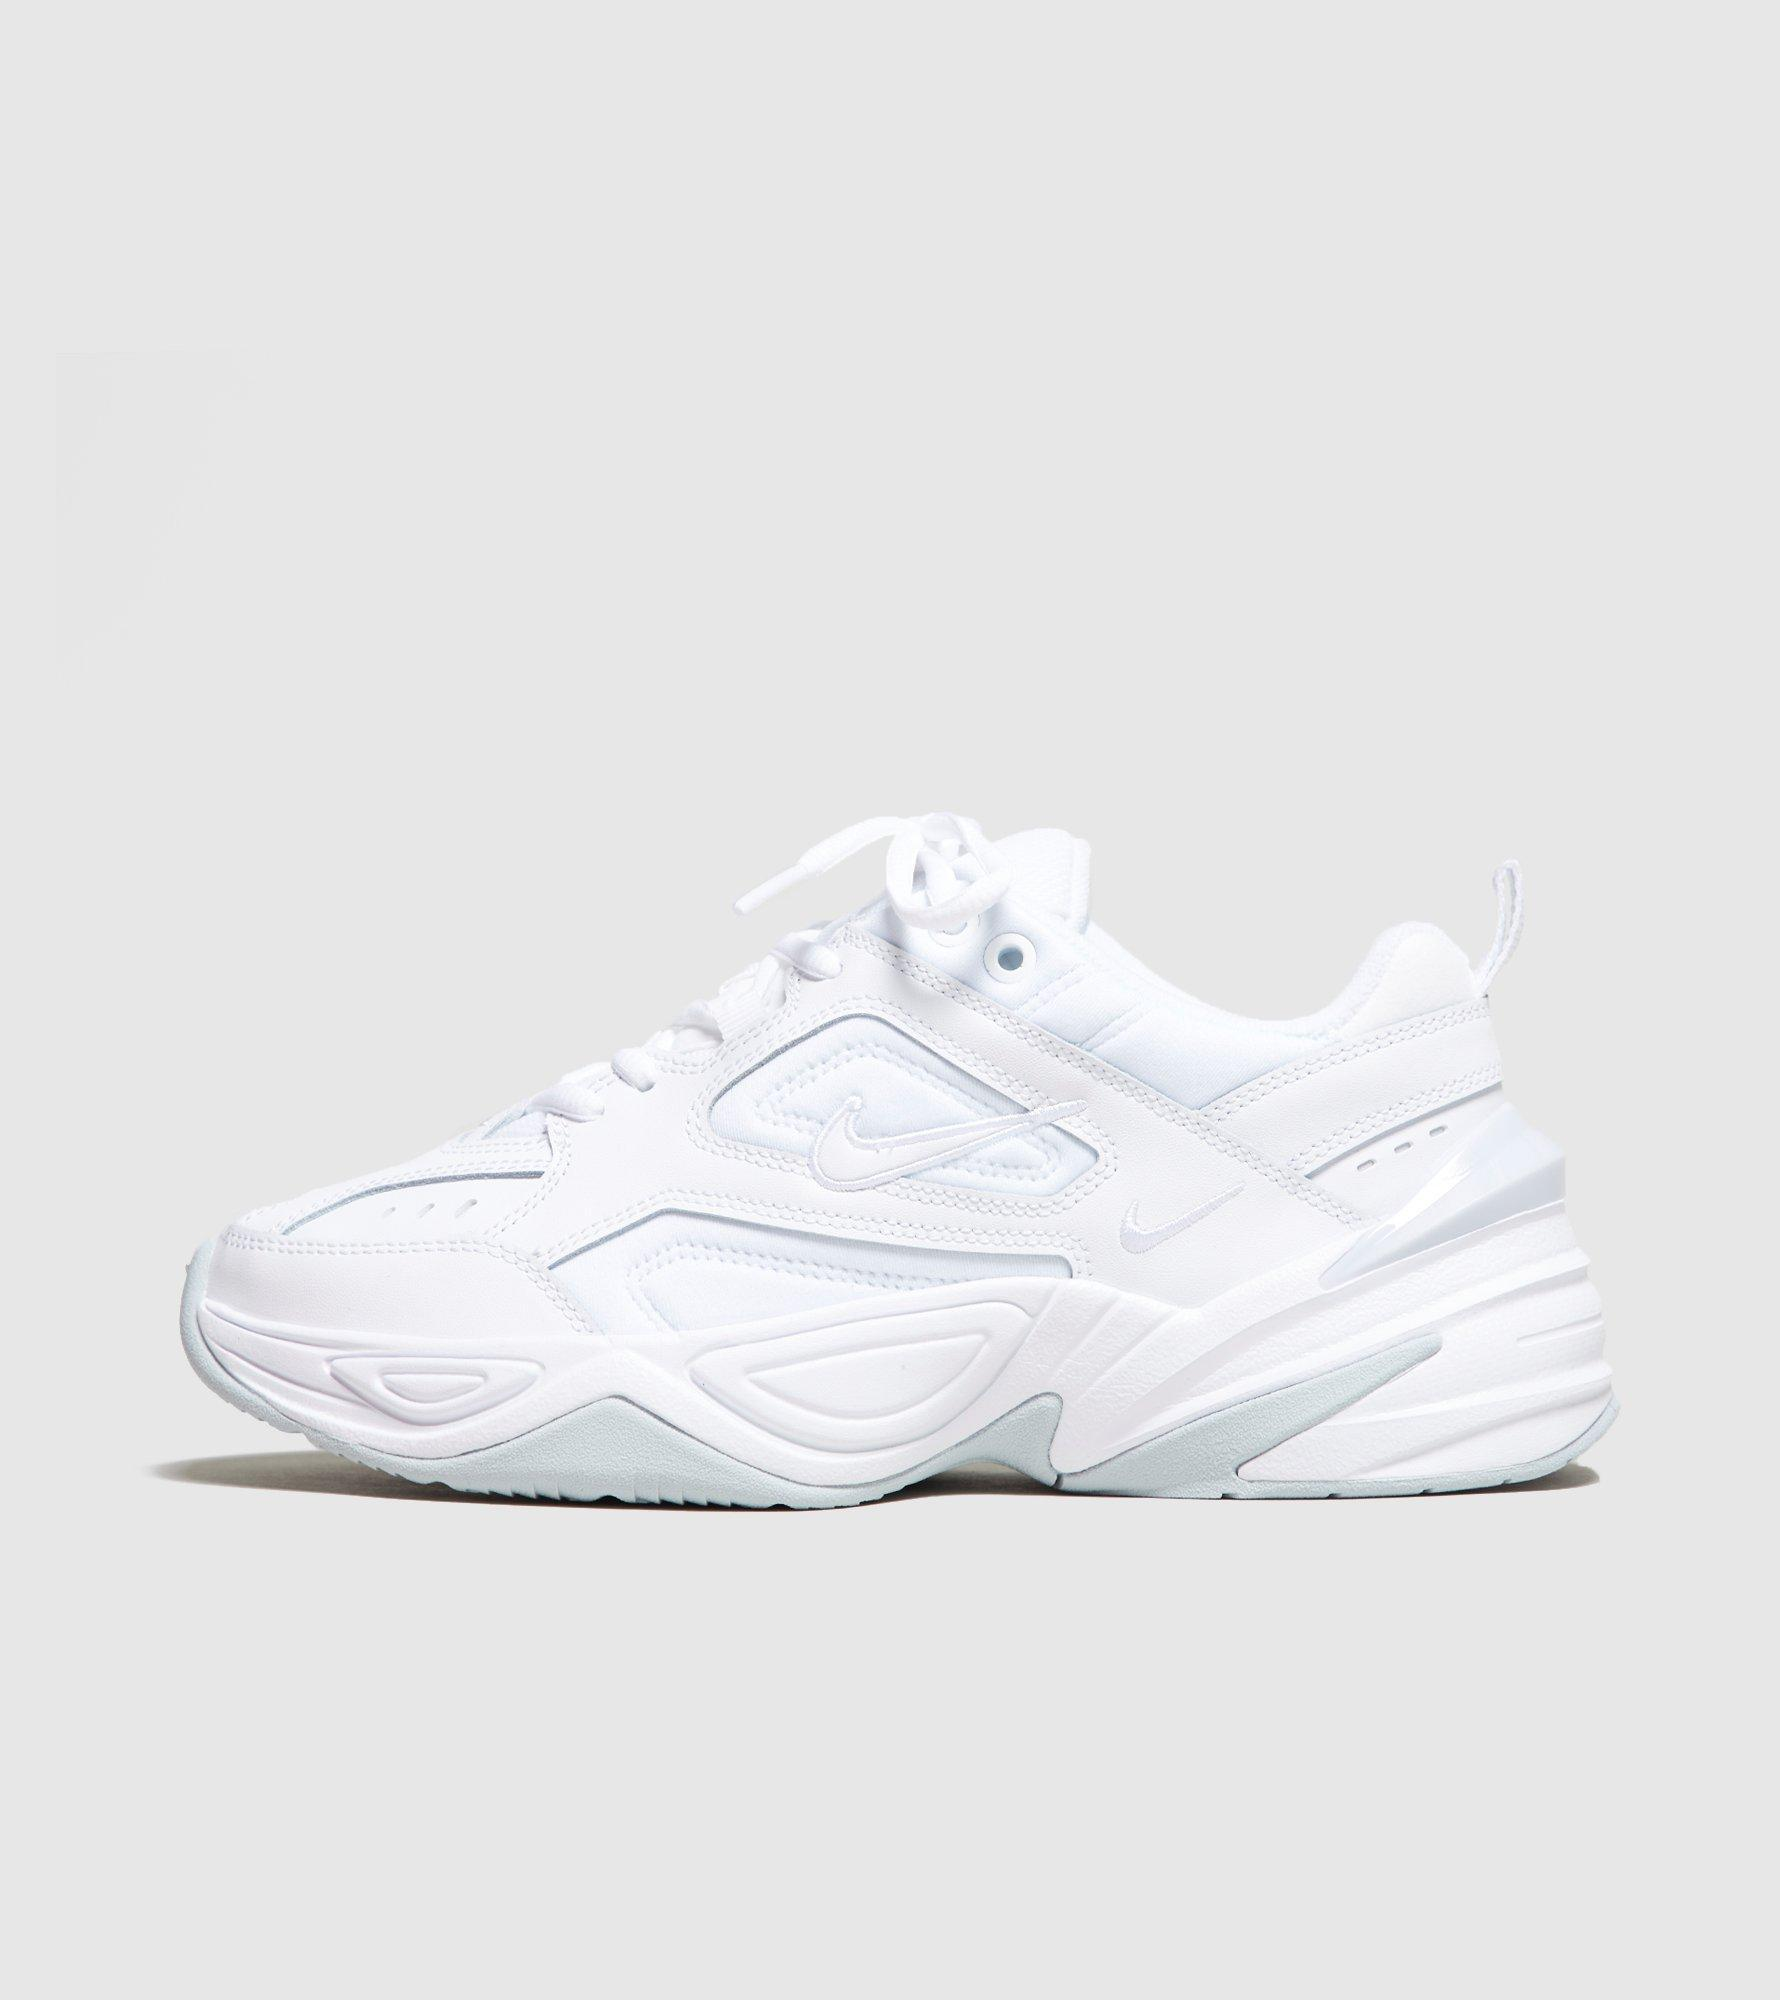 Lyst - Nike M2k Tekno Womens in White